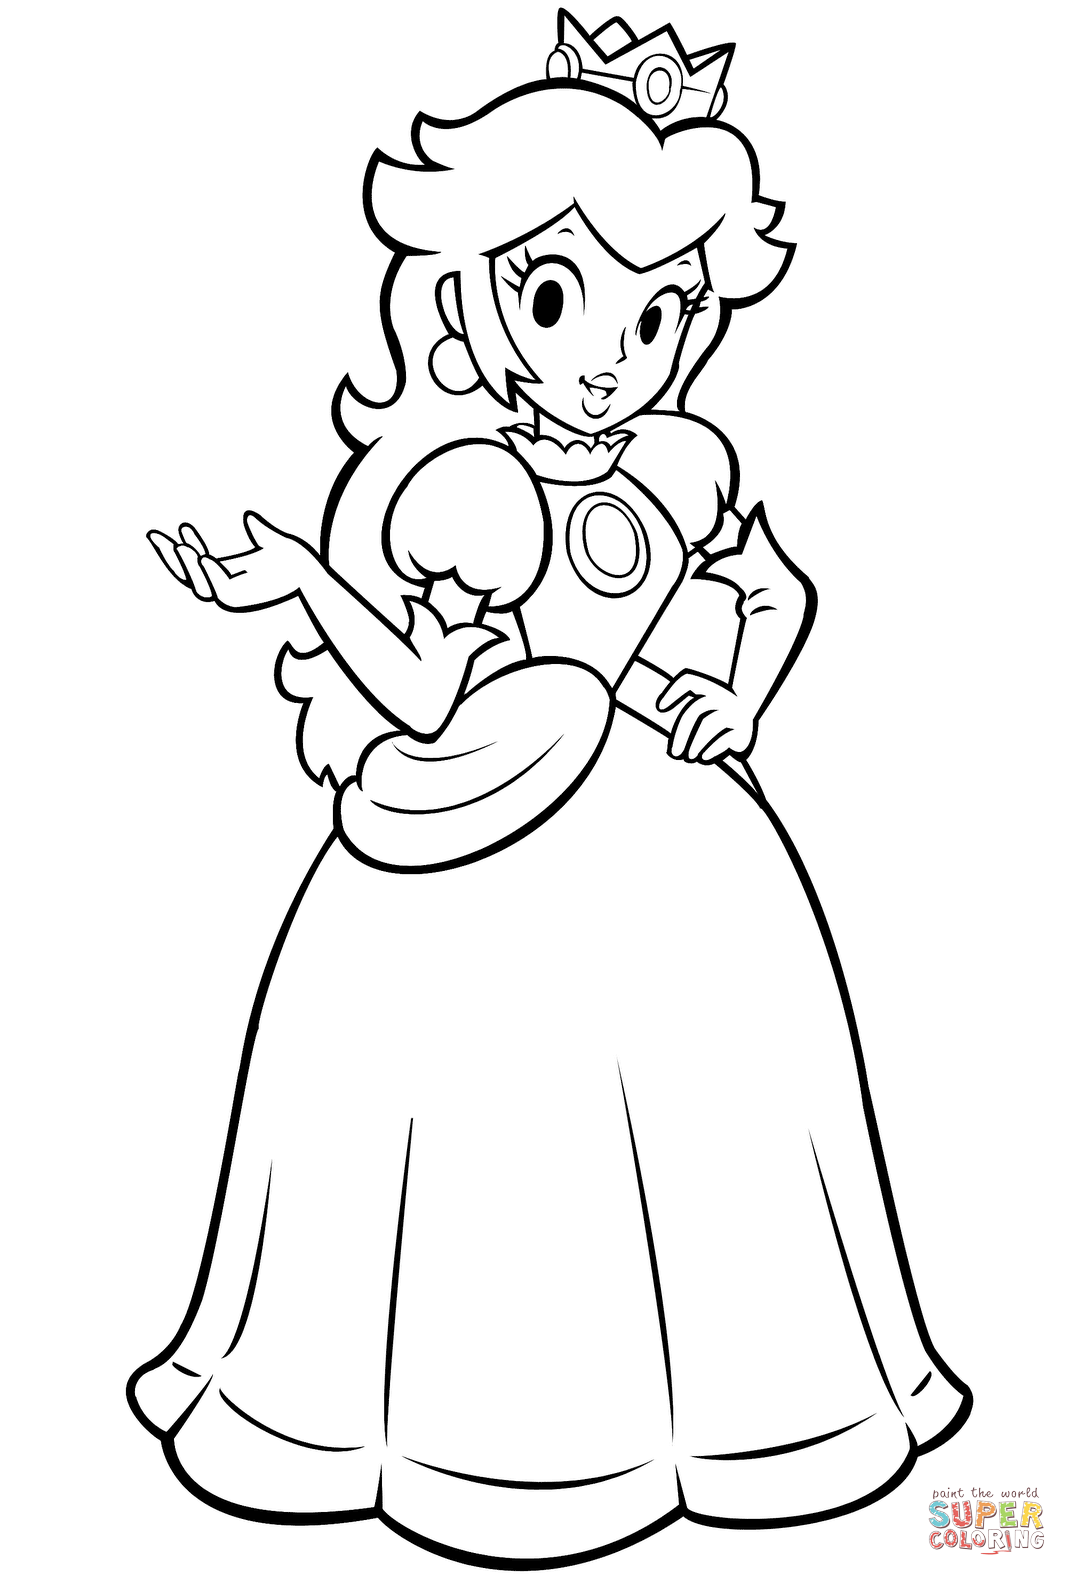 Mario Bros Princess Peach Coloring Page Free Printable Coloring Pages Super Mario Coloring Pages Mario Coloring Pages Princess Coloring Pages